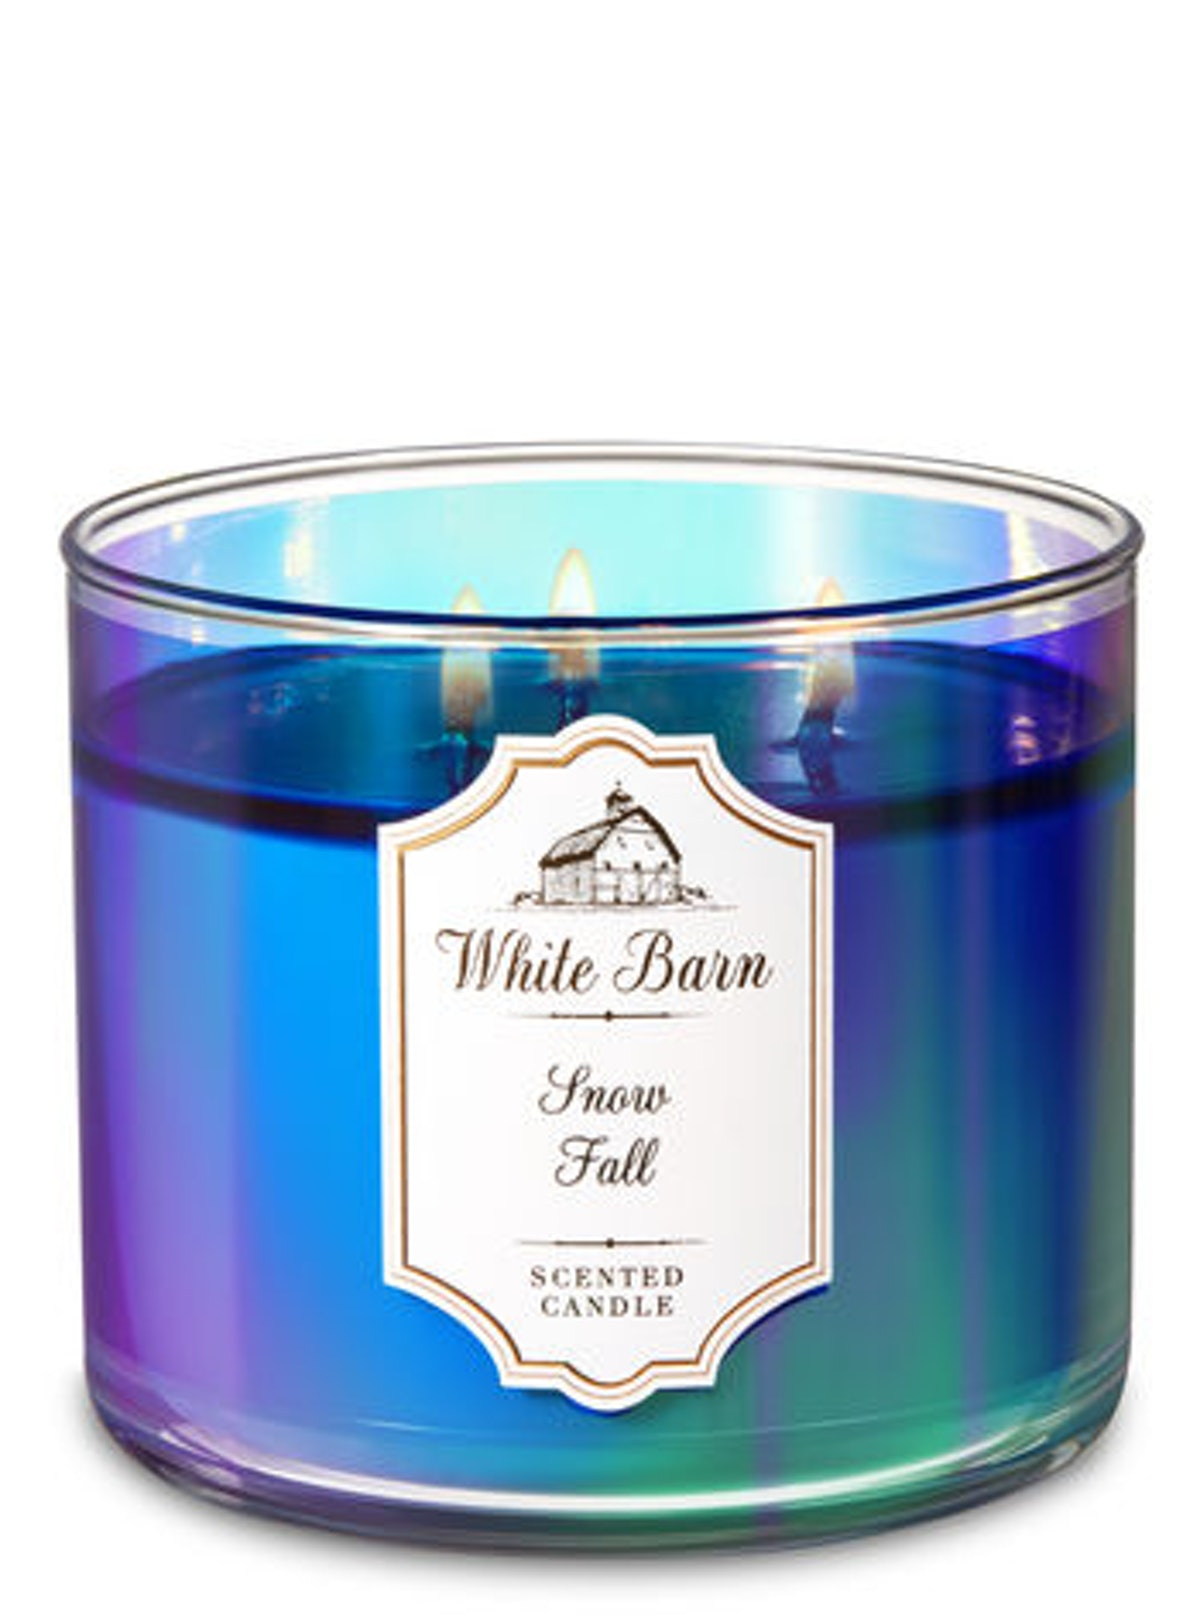 Snow Fall 3-Wick Candle